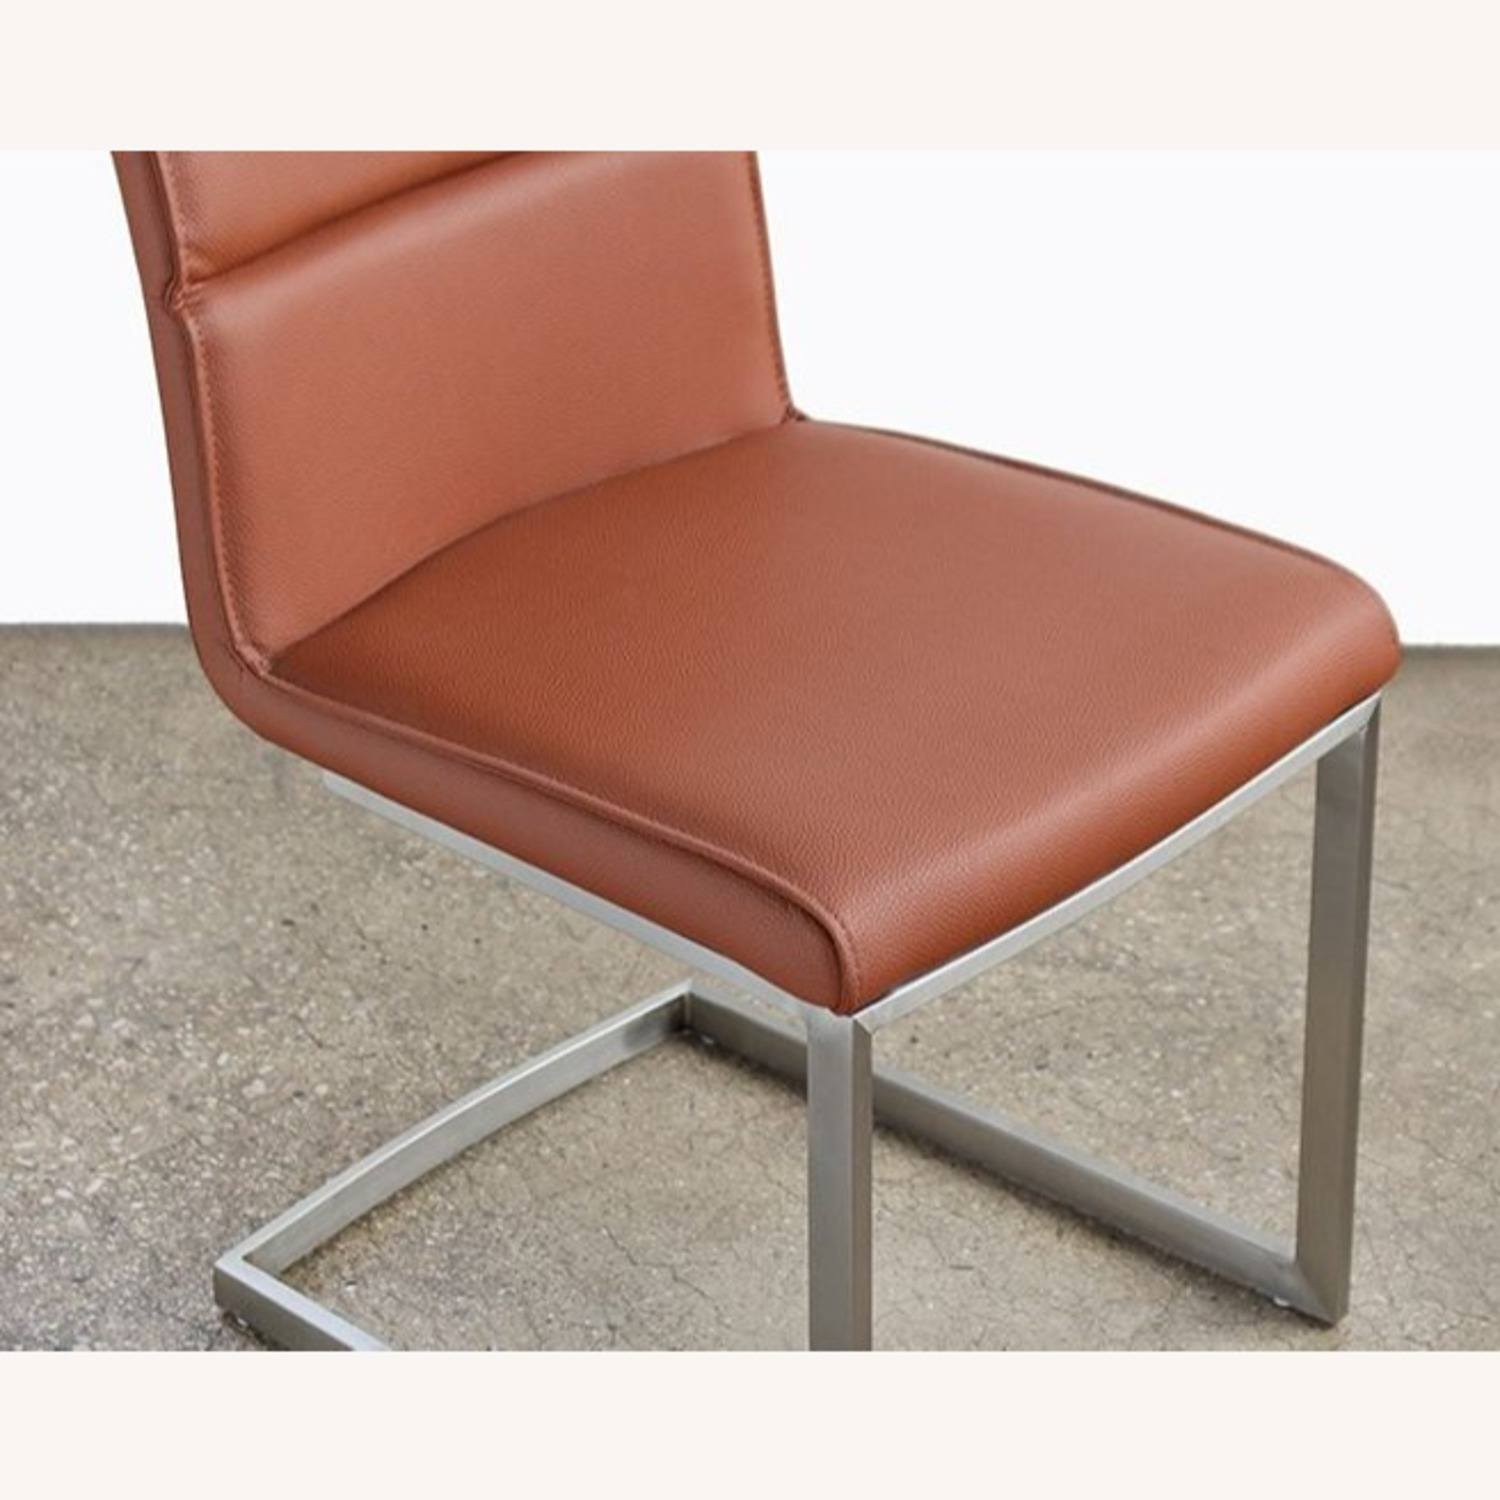 Tan Leatherette Dining Chair Stainless Steel Frame - image-2